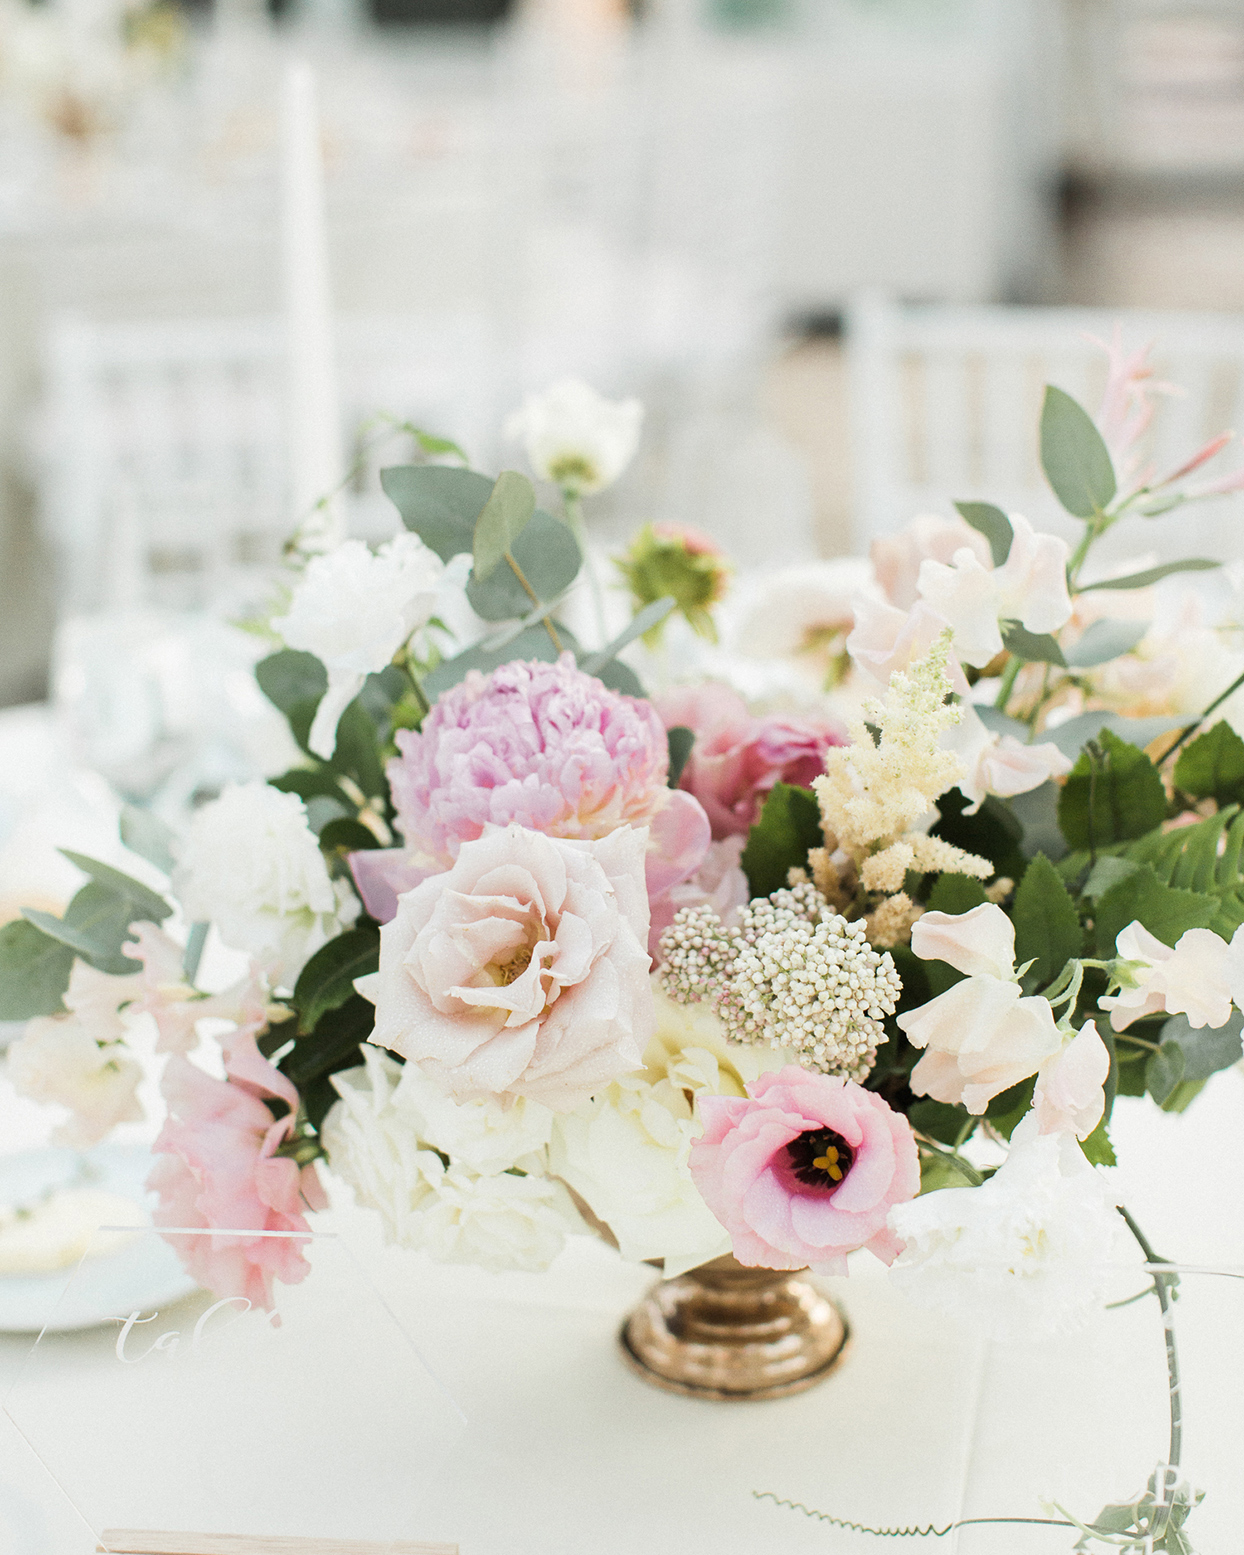 grace john wedding pastel floral centerpieces